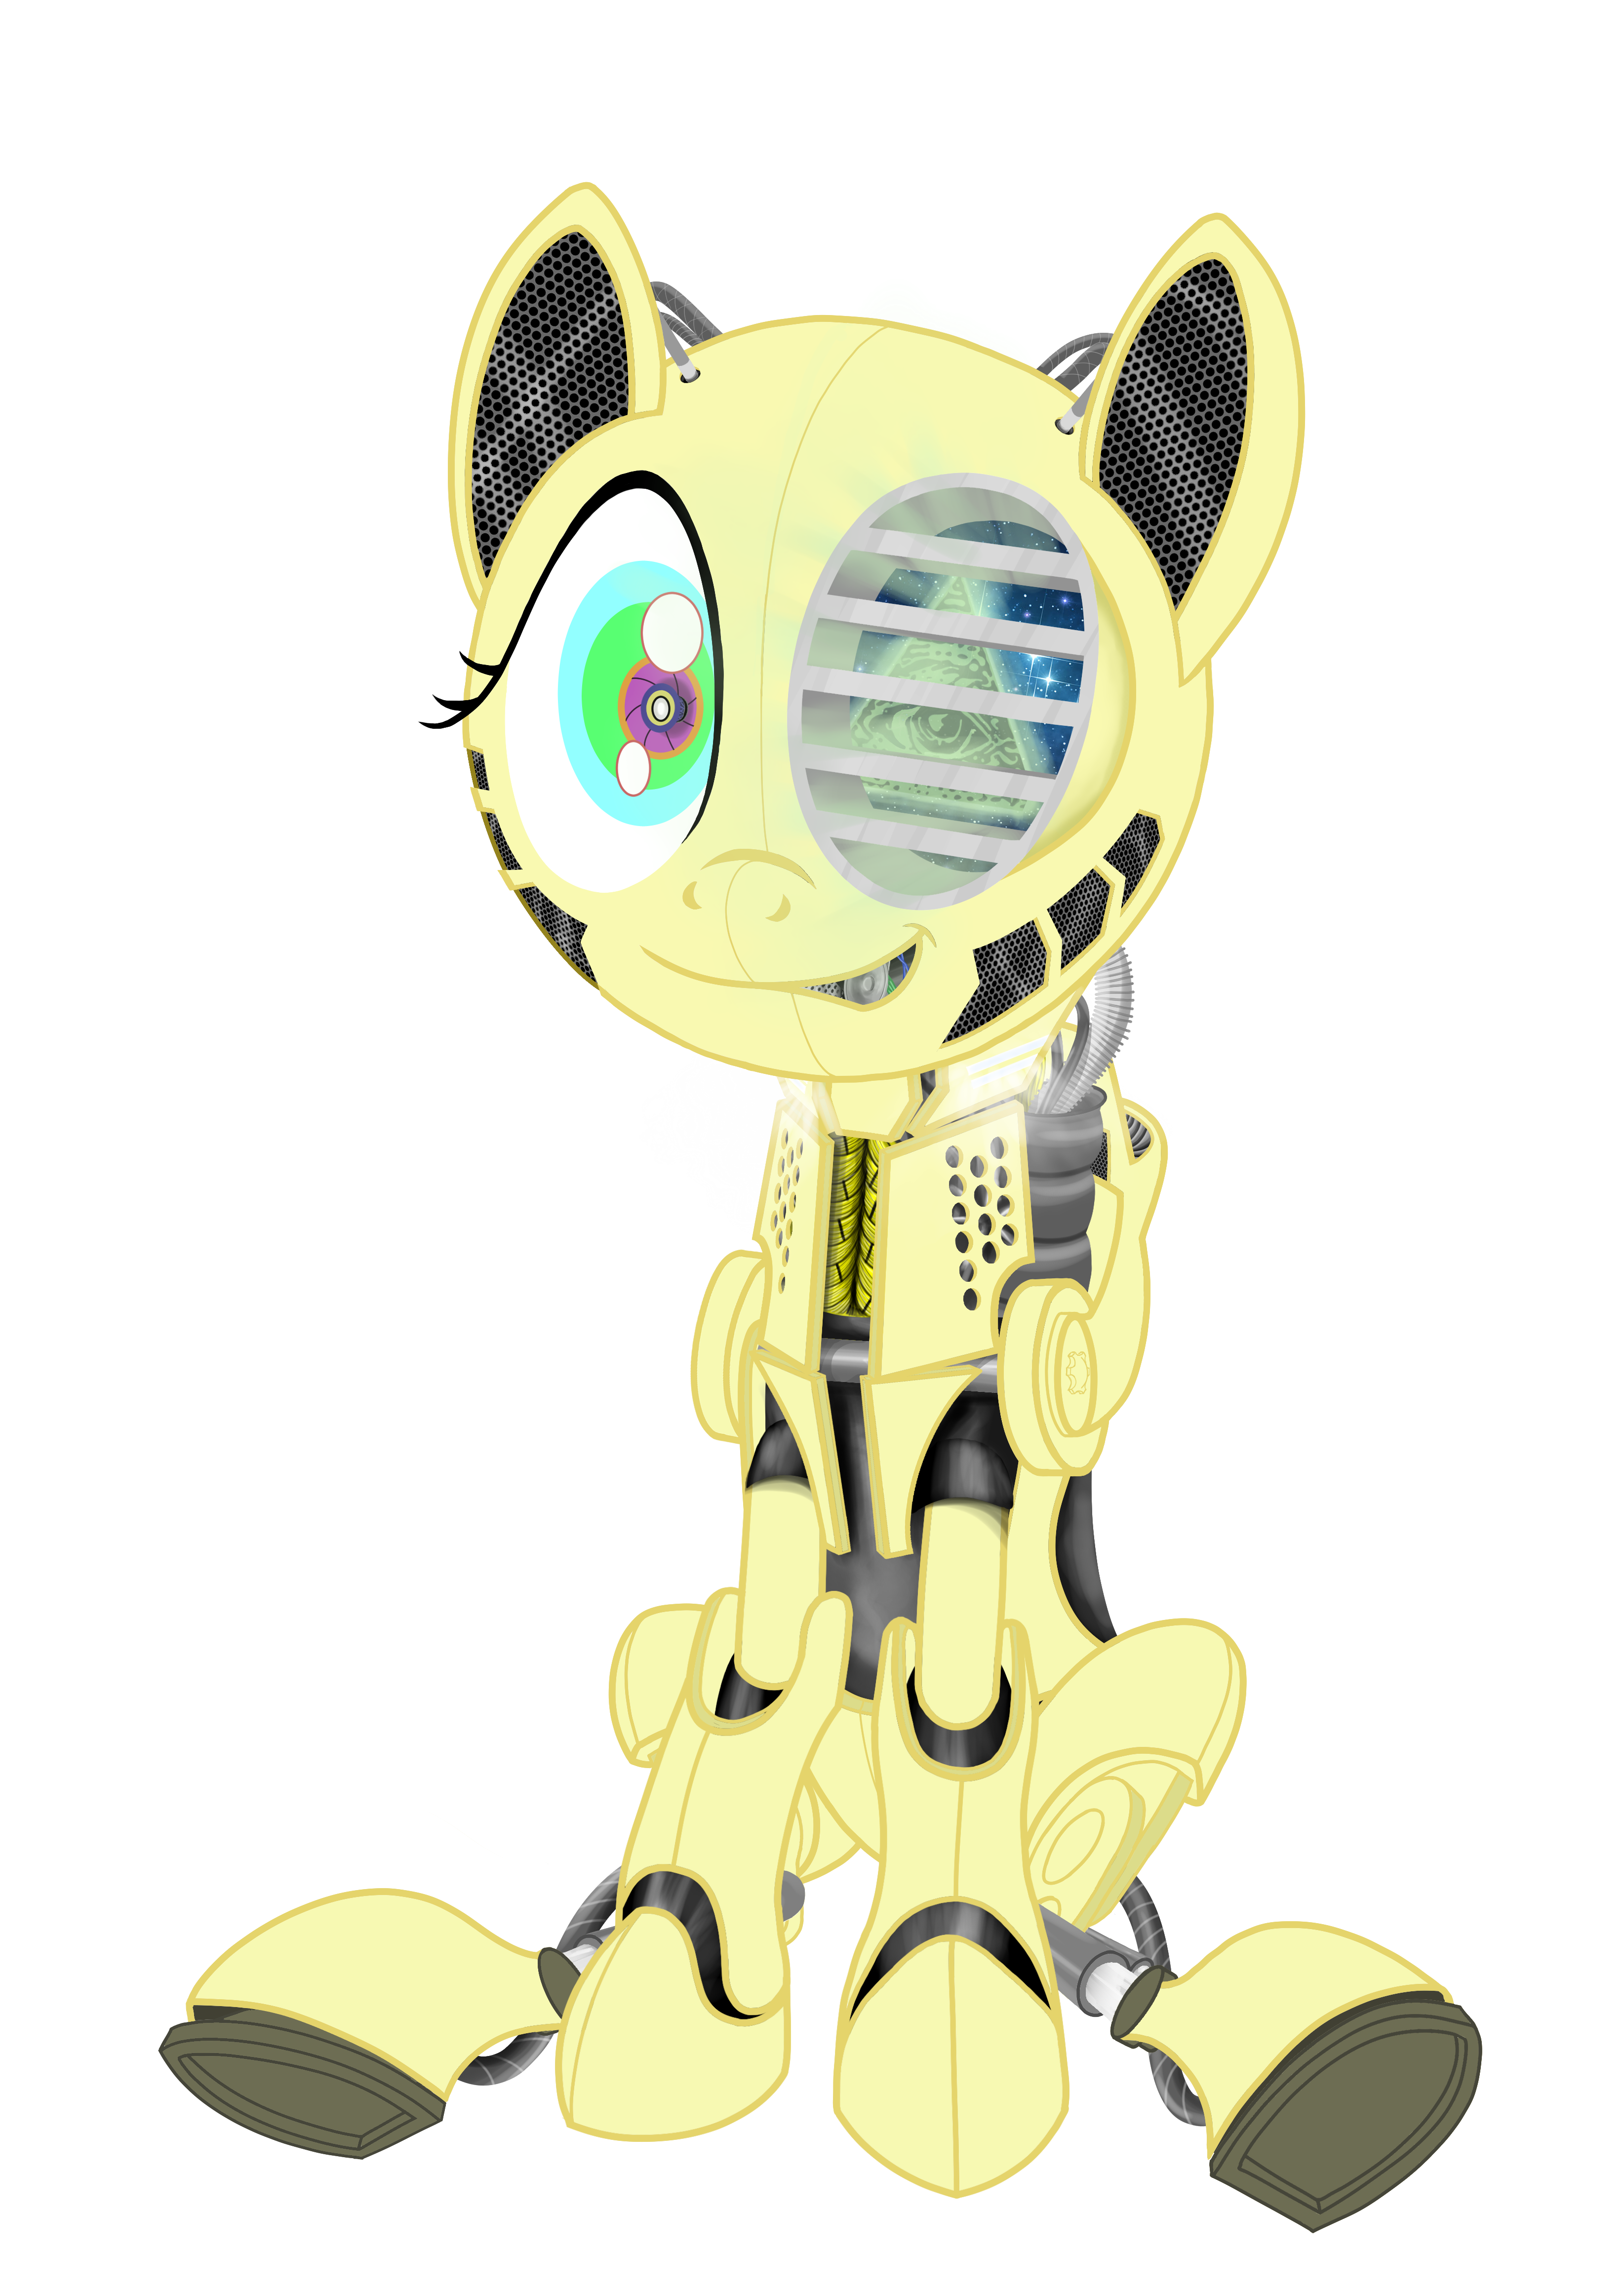 Mlp Robot Fluttershy Related Keywords Suggestions Mlp Robot